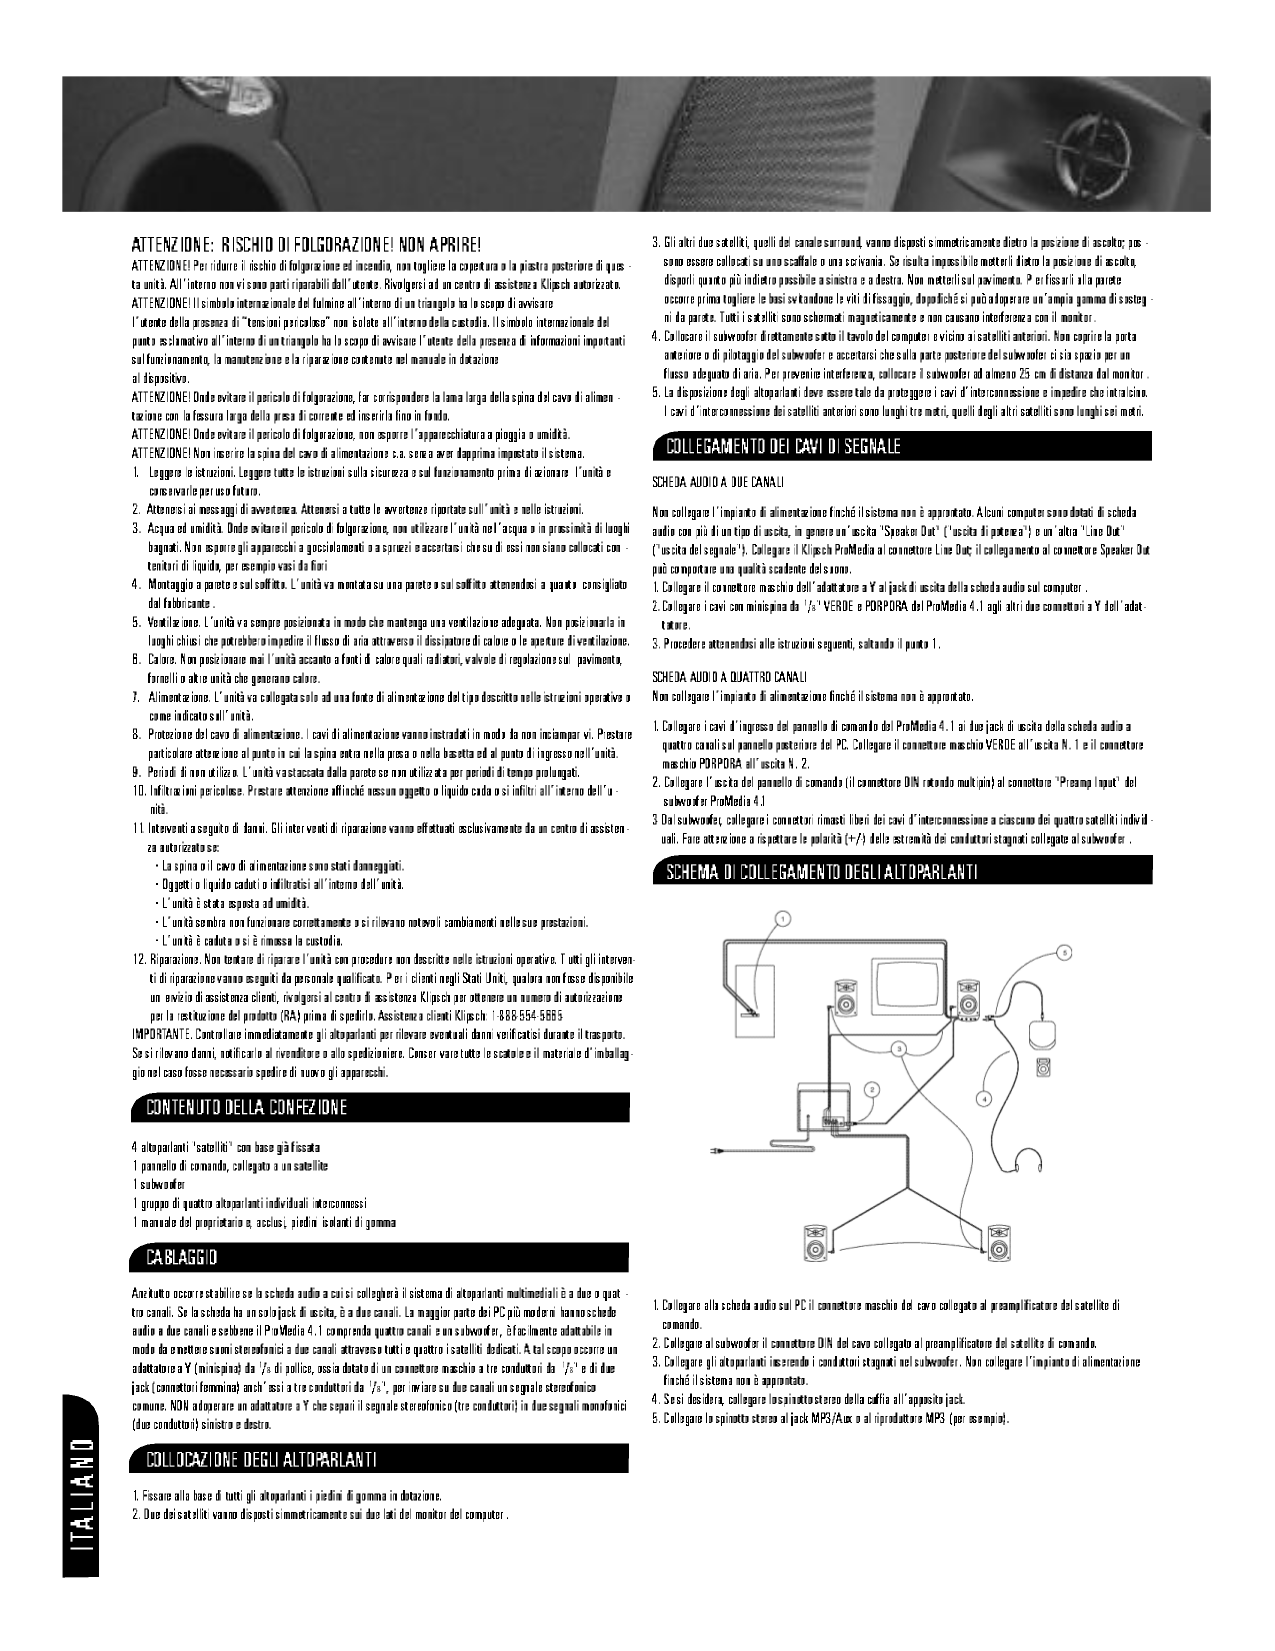 Klipsch Pro Media Wiring Diagram Page 4 And Diagrams Subwoofer Radio Source Pdf Manual For Speaker Promedia 1 Rh Umlib Com